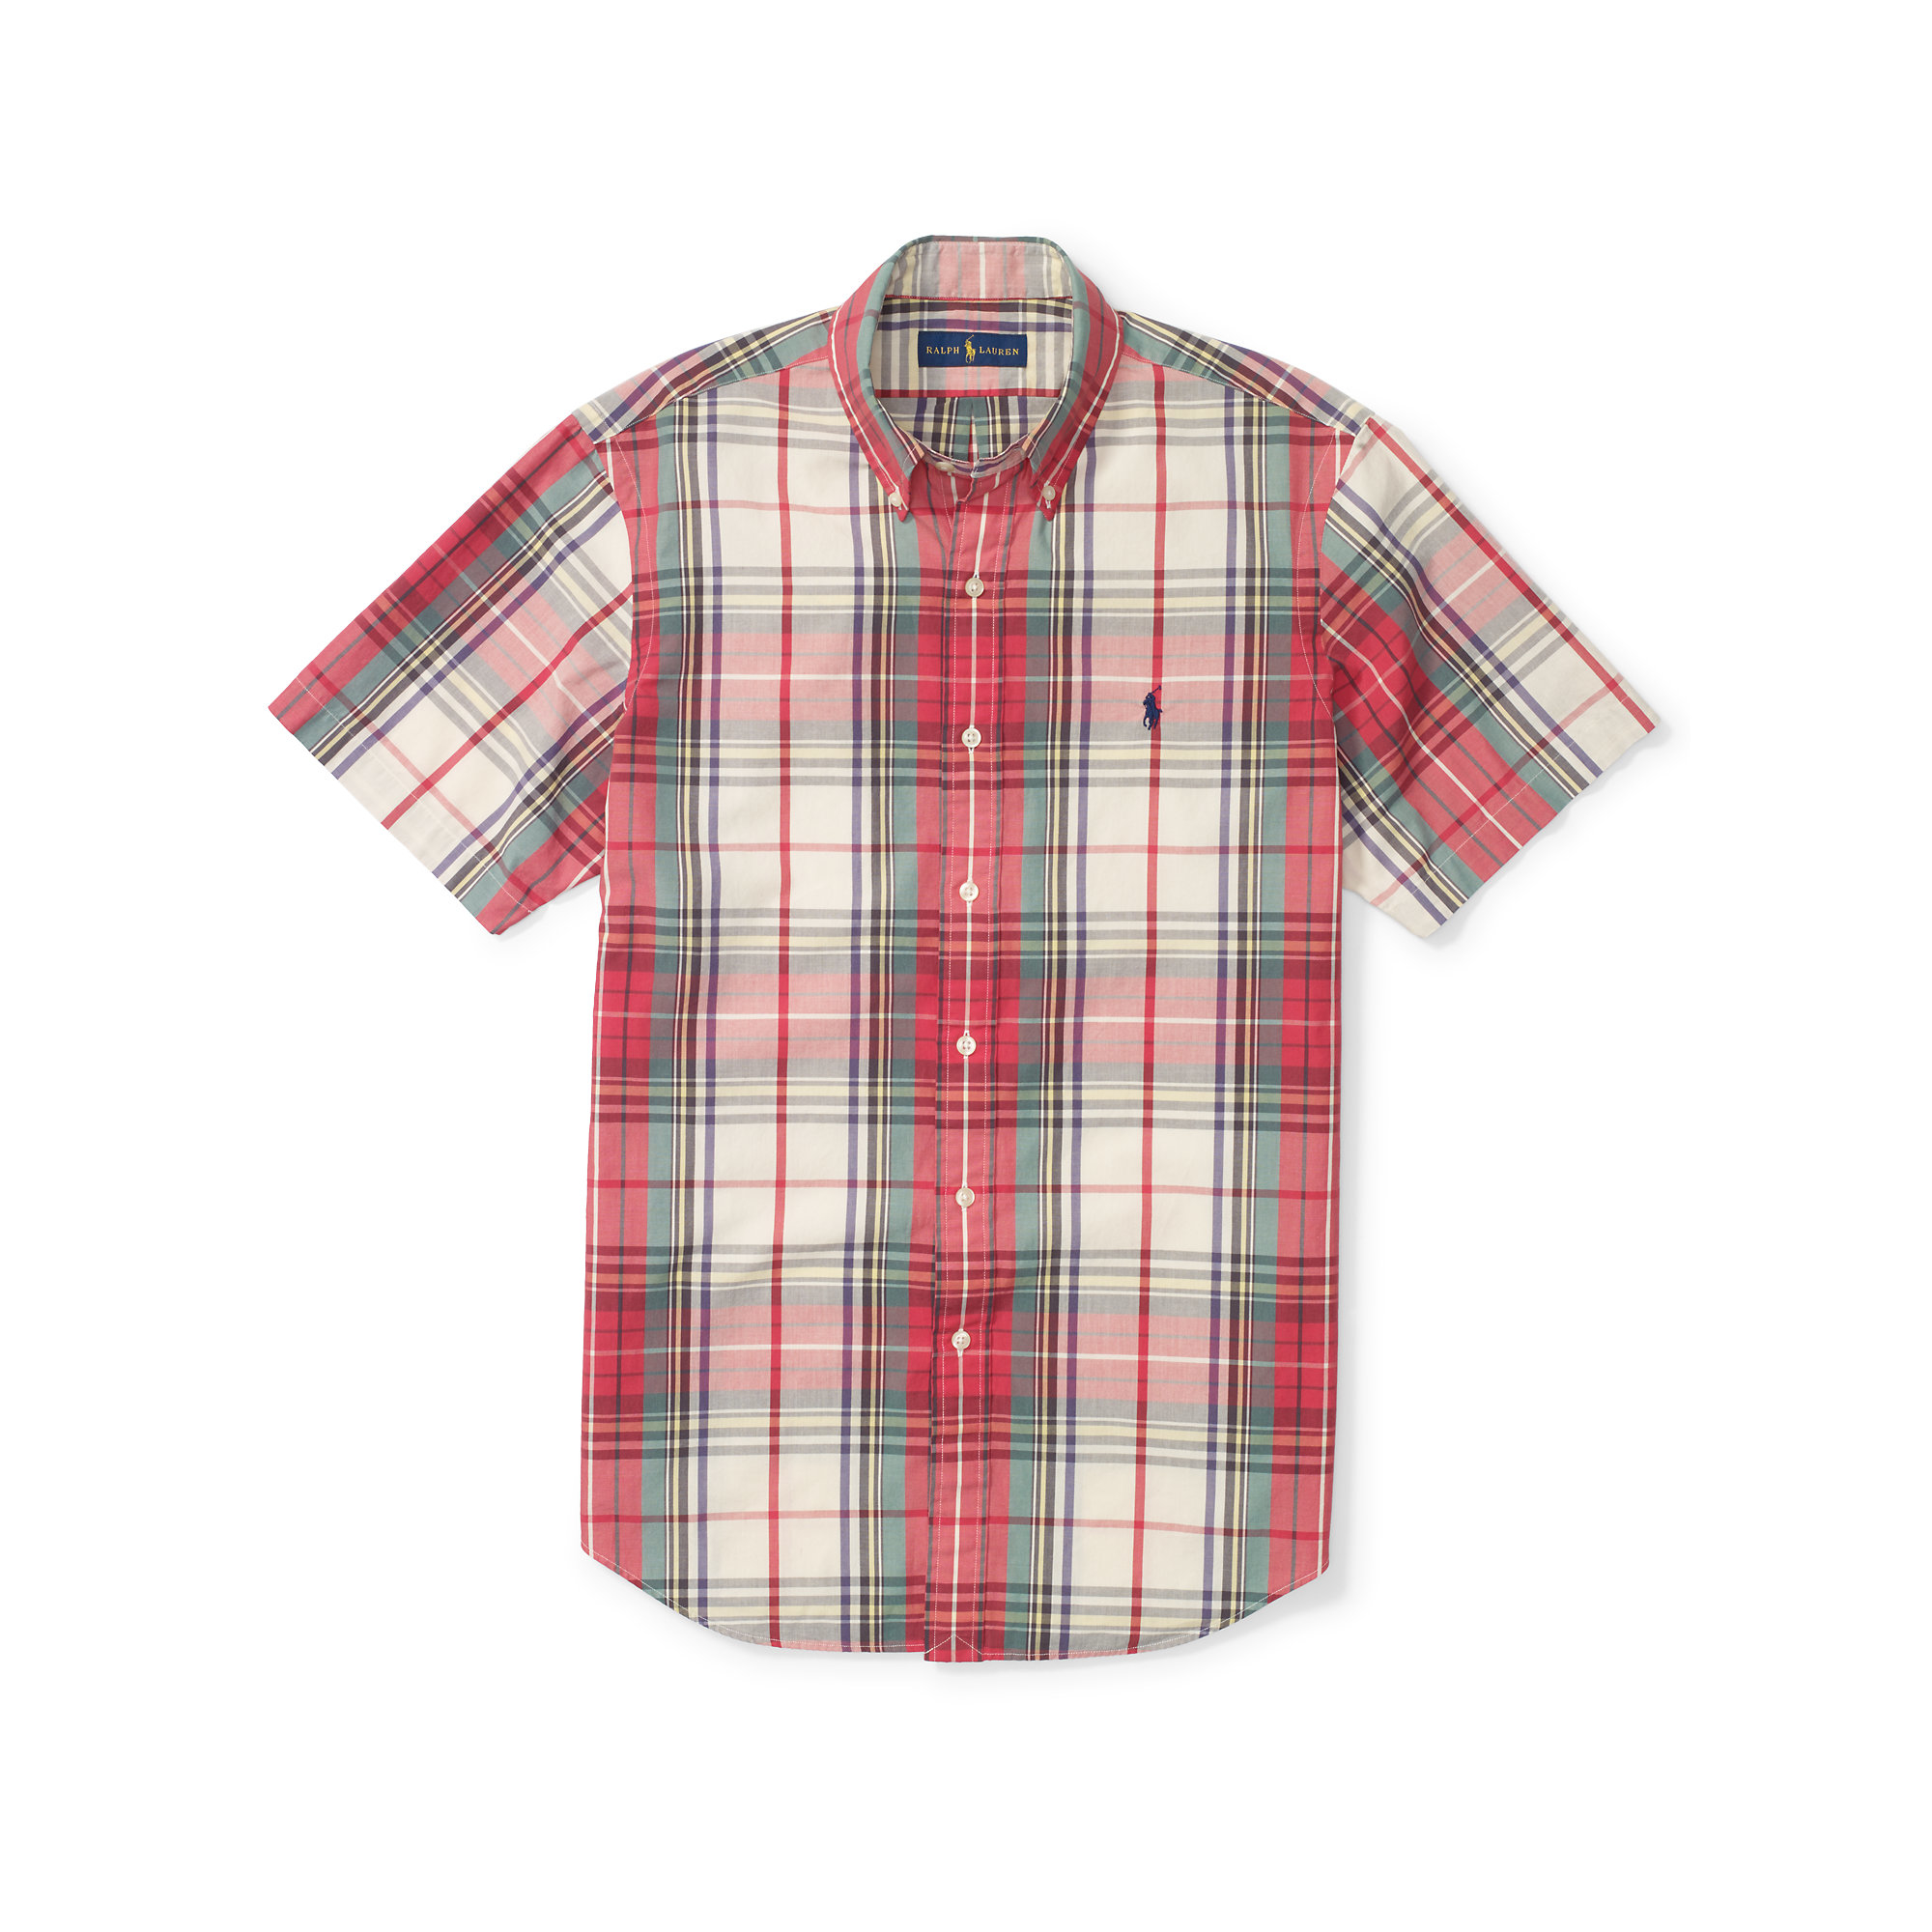 Lyst polo ralph lauren plaid short sleeve shirt in green Short sleeve plaid shirts